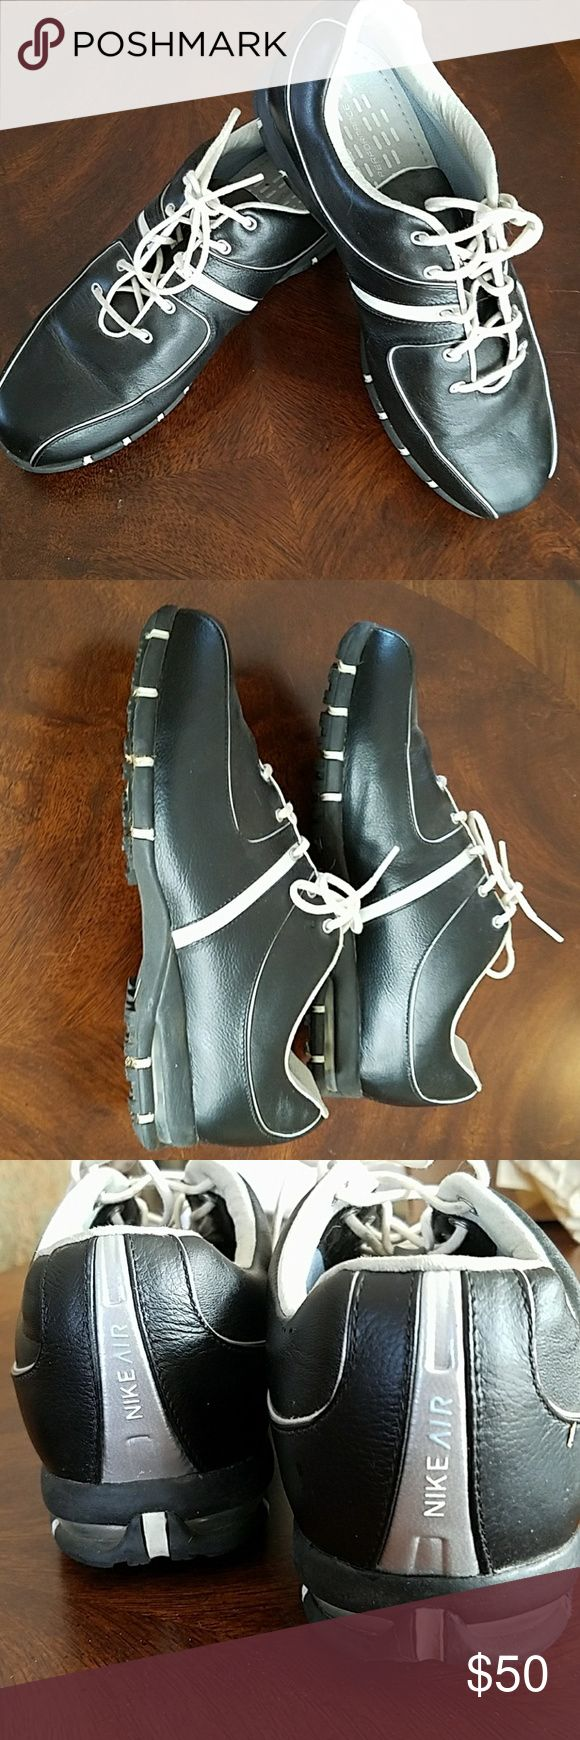 Nike Air Golf Shoes women size 7.5 wide Black and white all leather golf shoes Nike Shoes Athletic Shoes